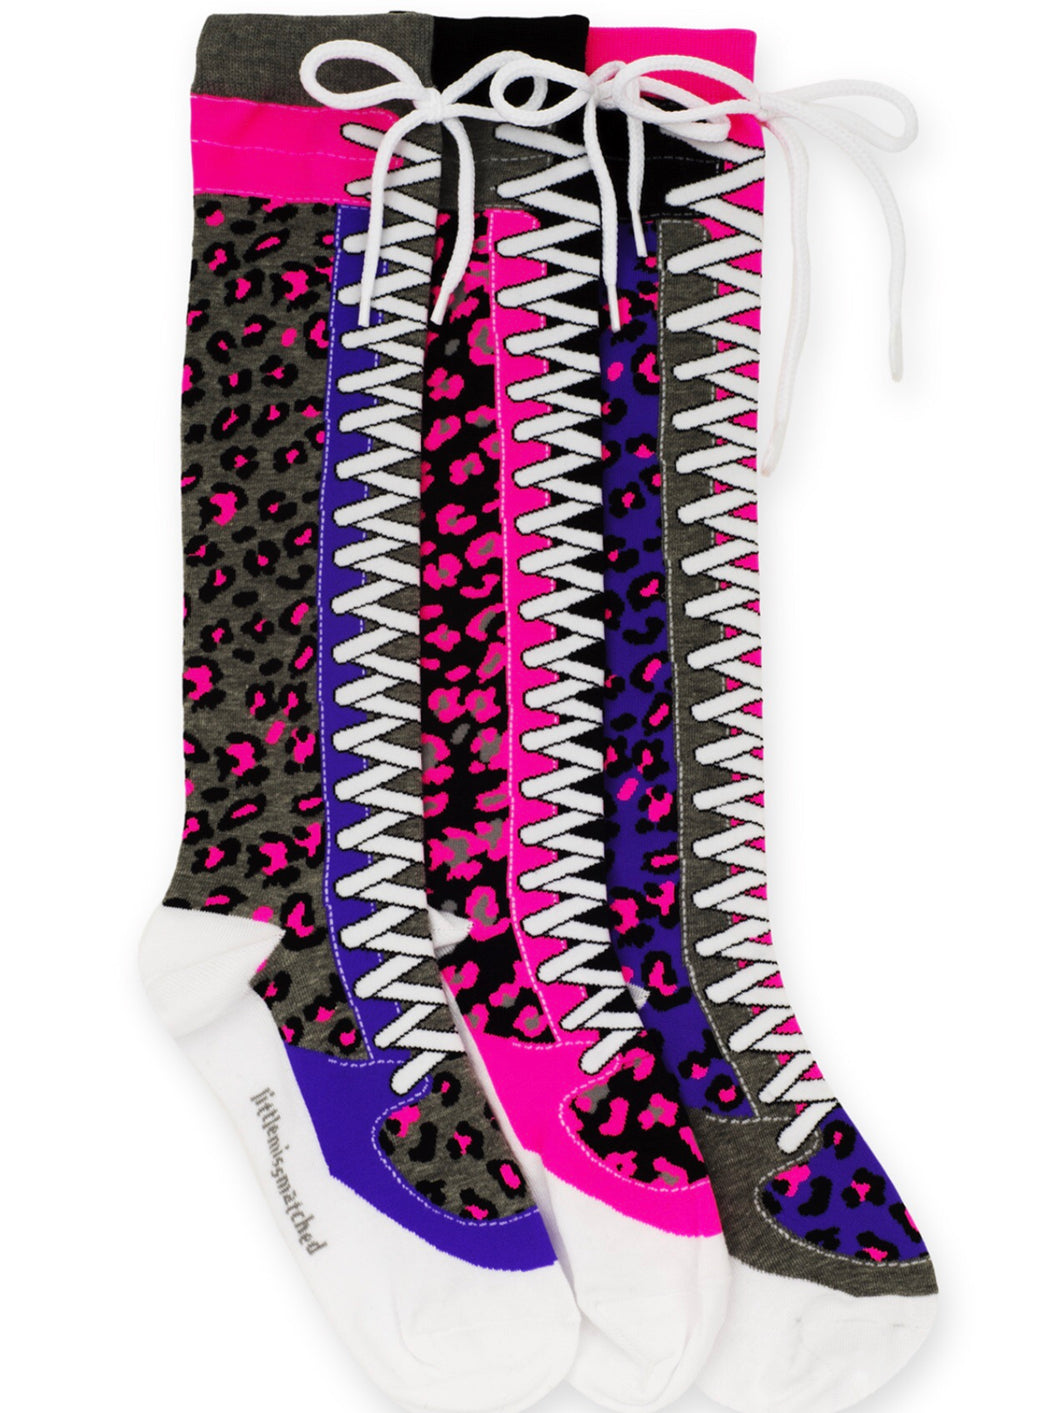 Cheetah Knee High Socks with Laces